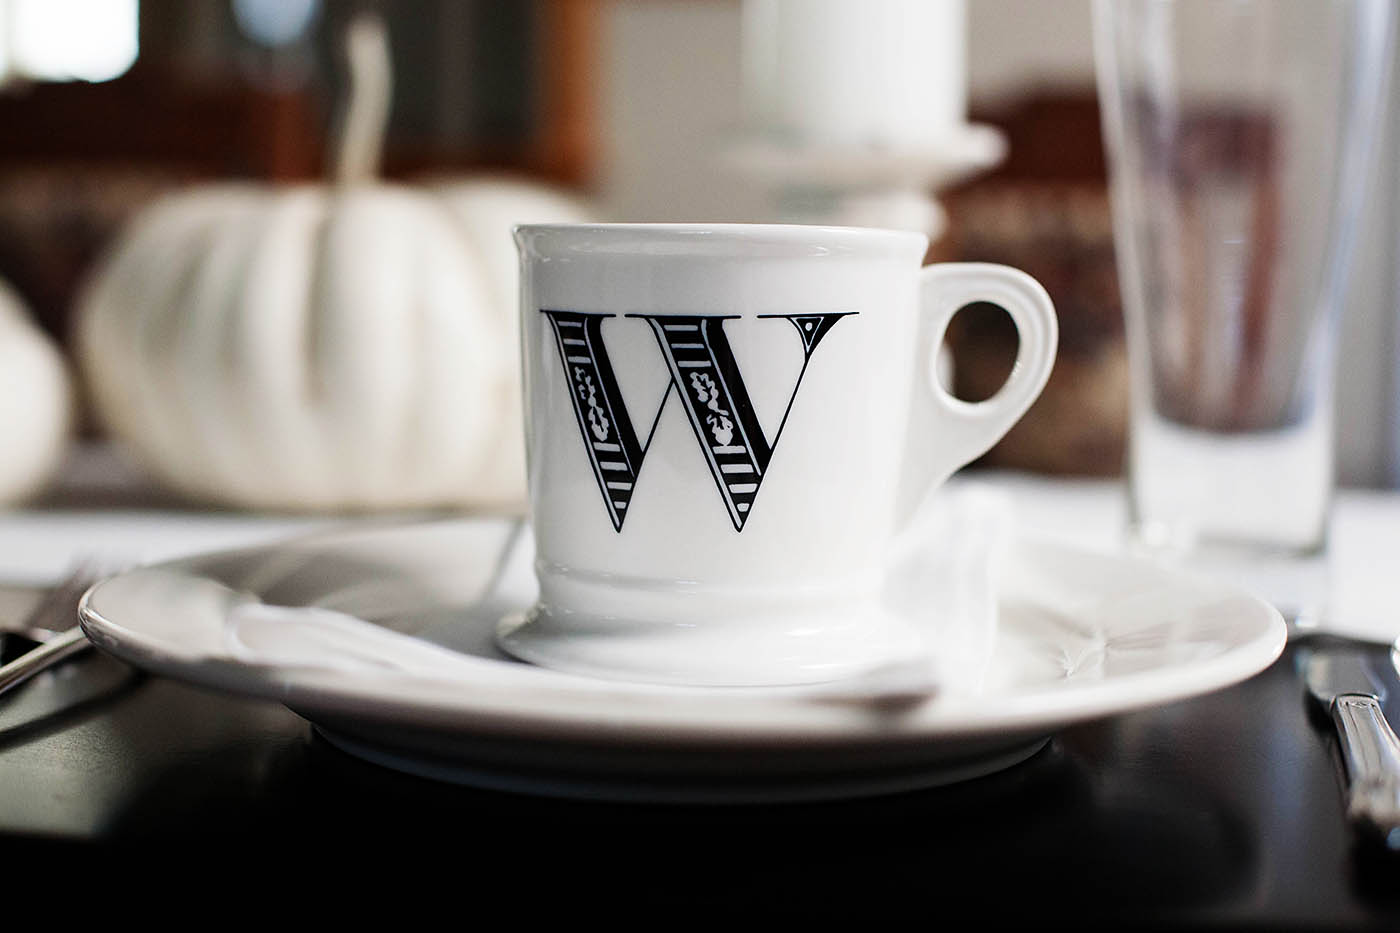 An initial coffee mug makes a great looking place setting and a fun gift!